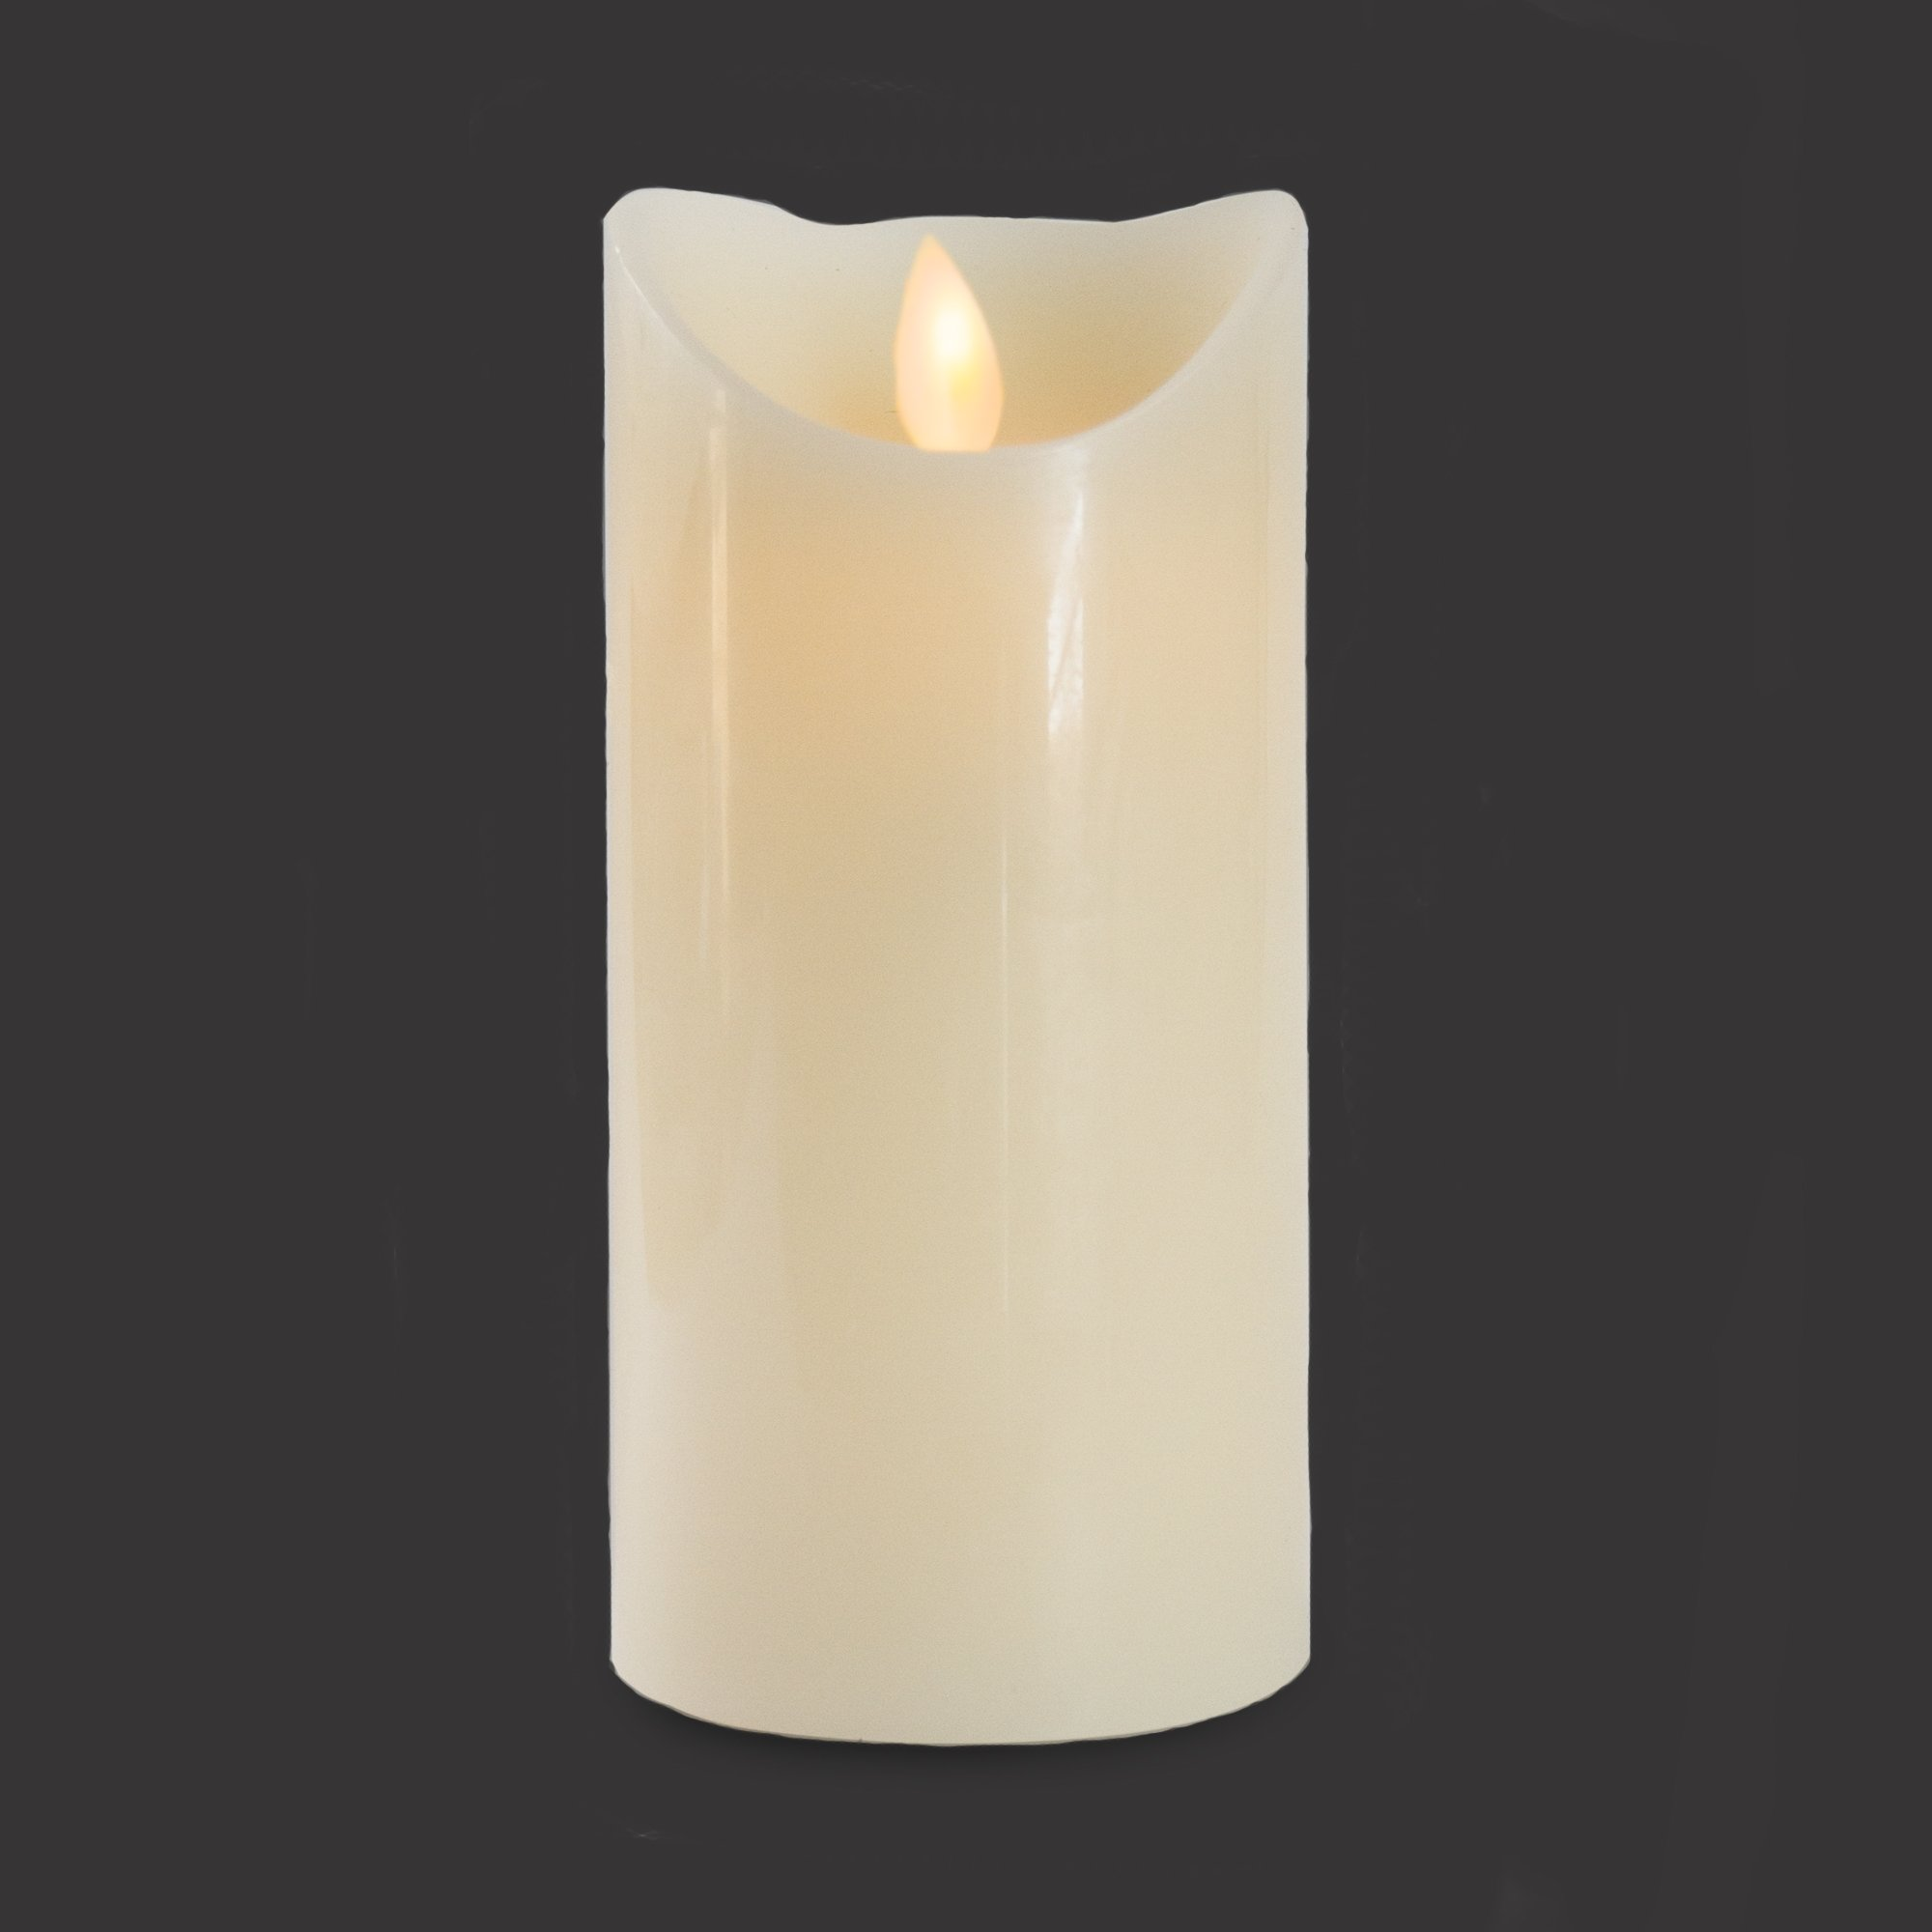 Gideon 7 Inch Flameless LED Candle - Real Wax & Real Flickering Candle Motion - with Remote On/Off - Vanilla Scented, Ivory